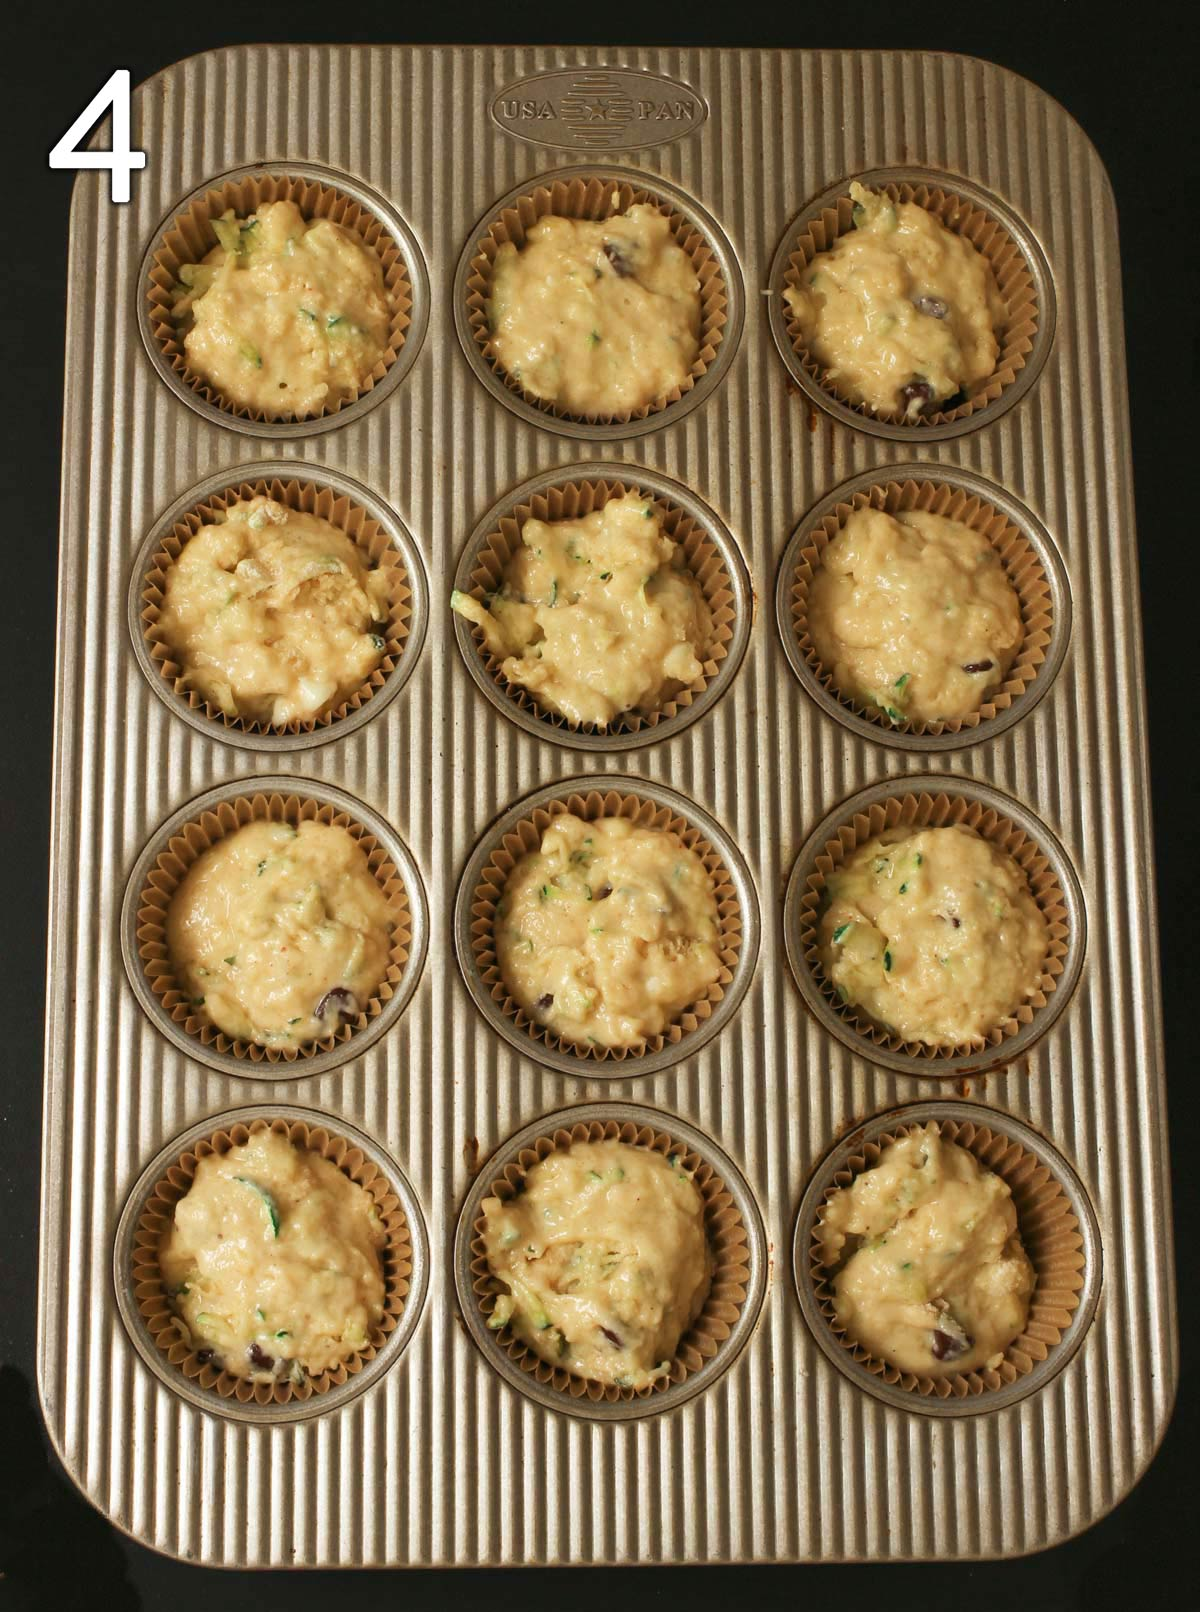 batter scooped into muffin tins.